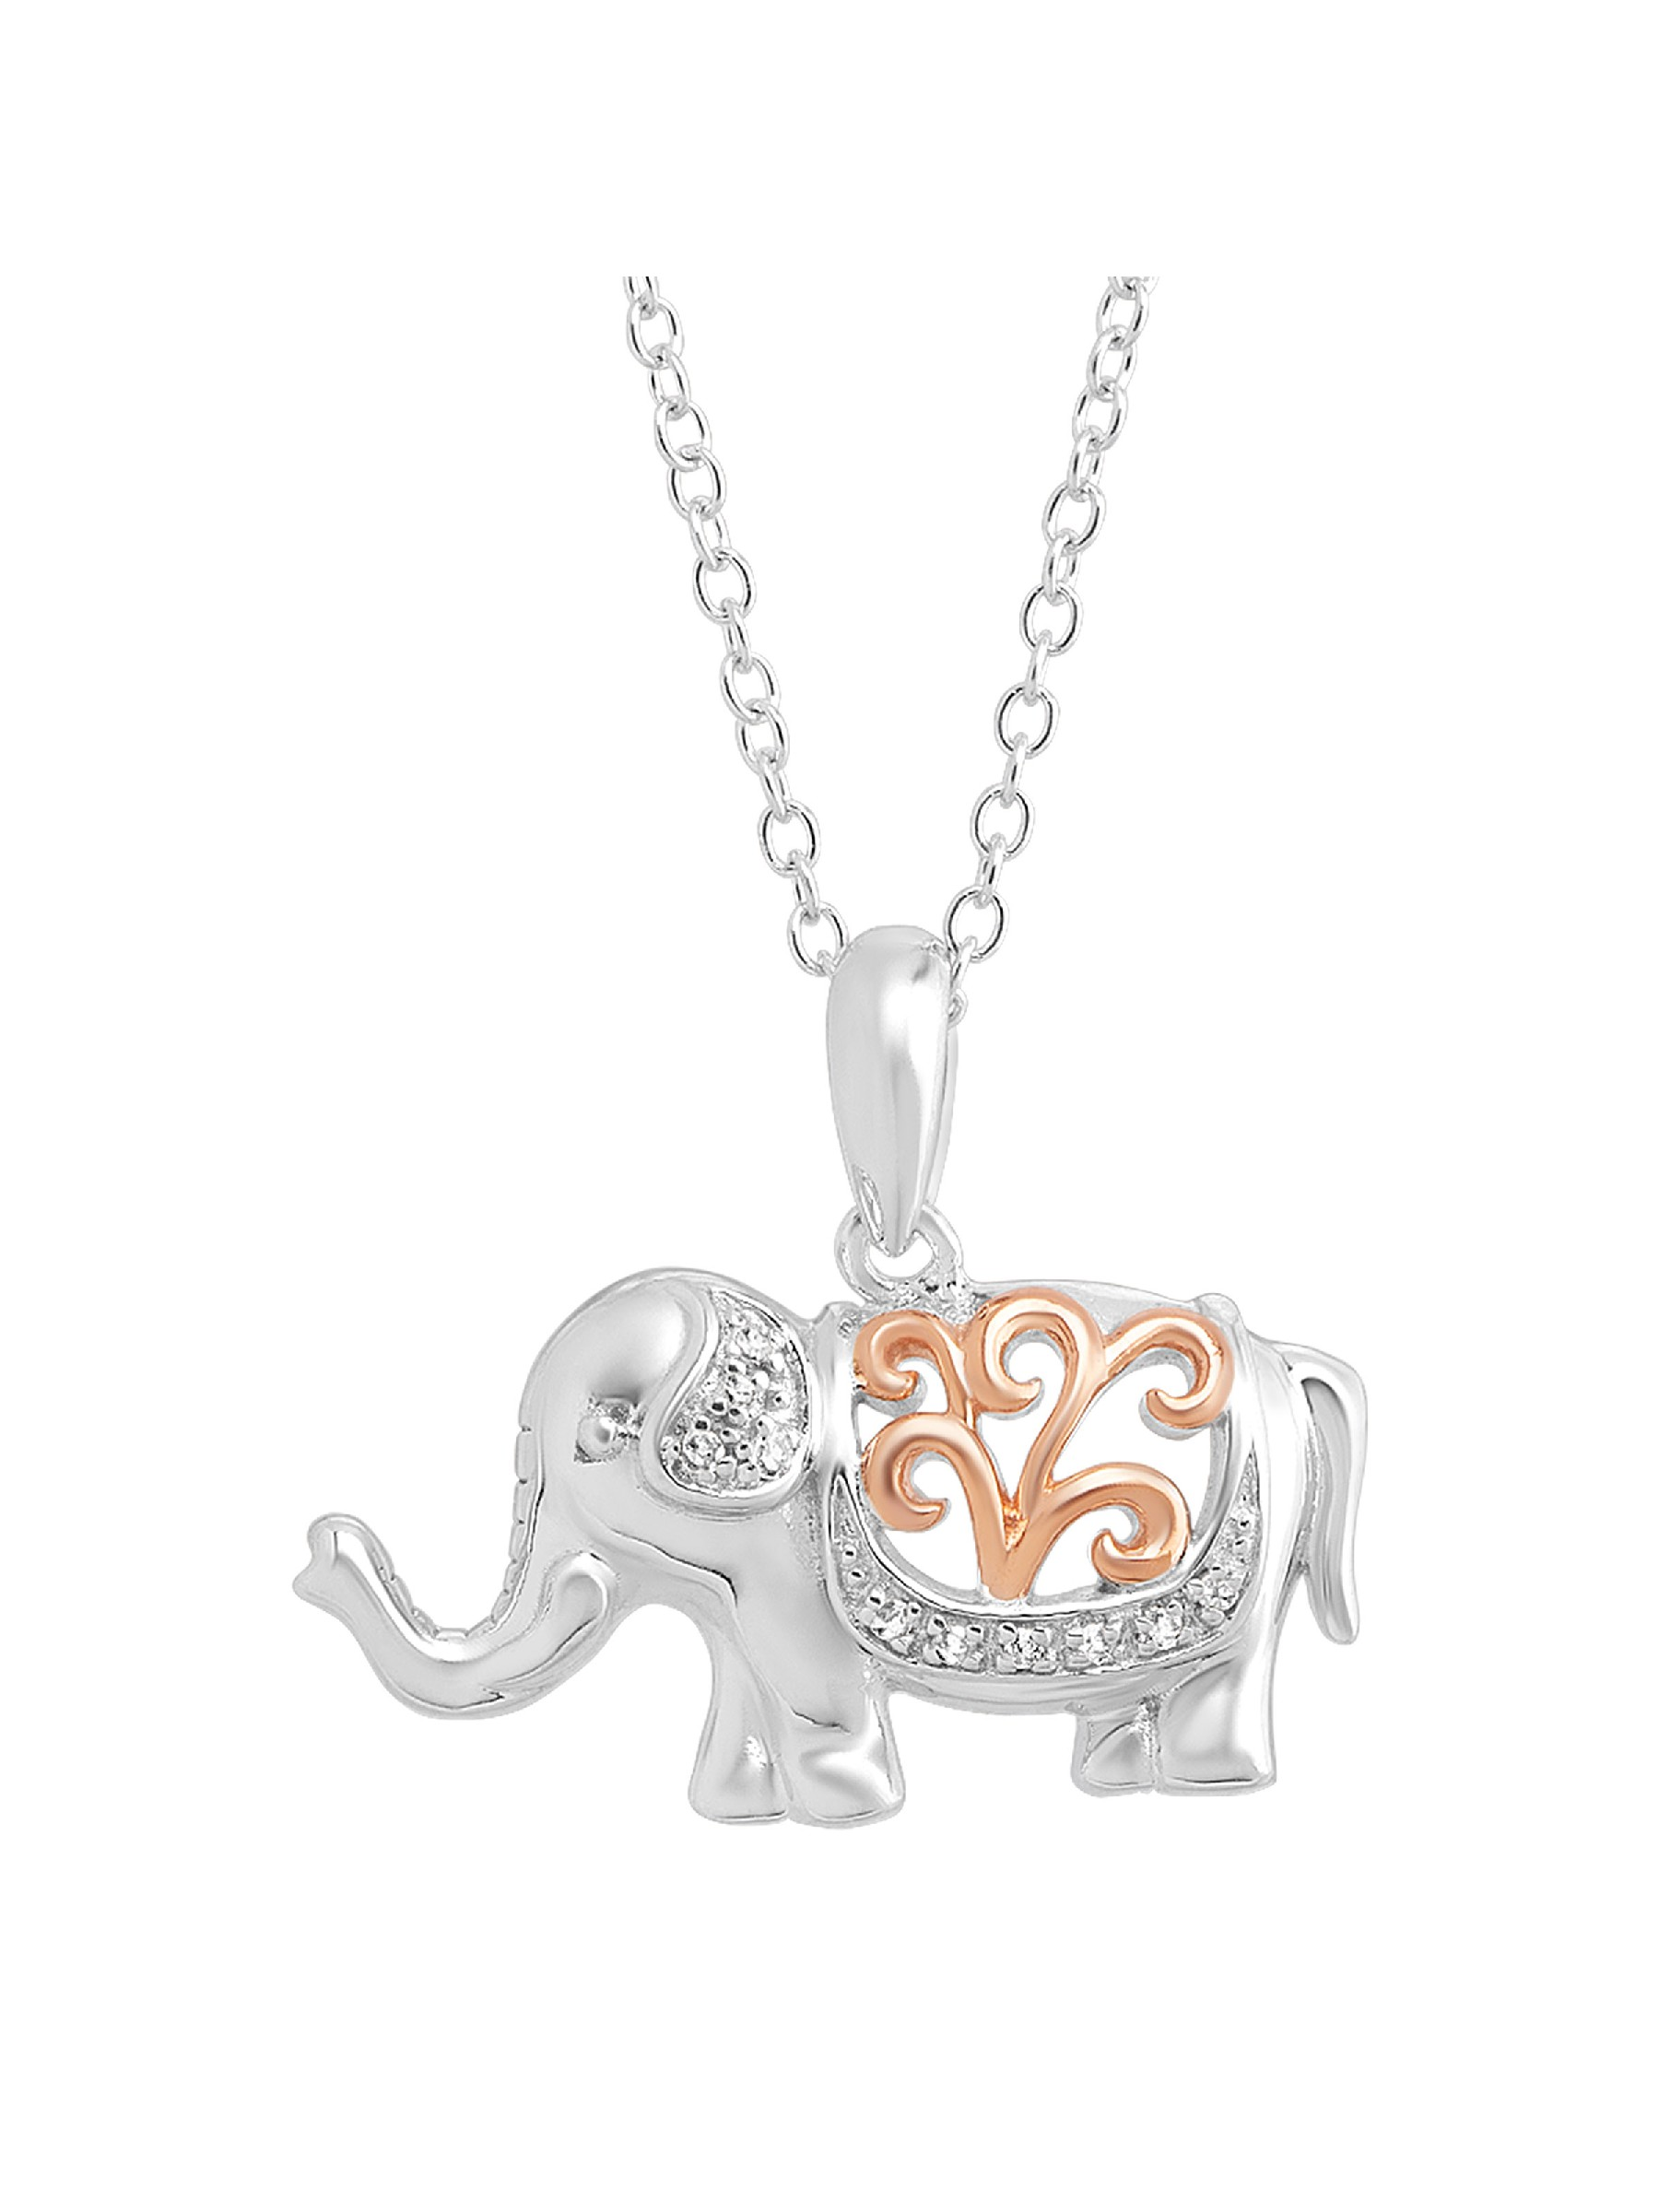 Elephant gifts Teen/'s Girl/'s Elephant Jewelry. woman/'s elephant necklace in sterling silver on an 18 sterling silver cable chain